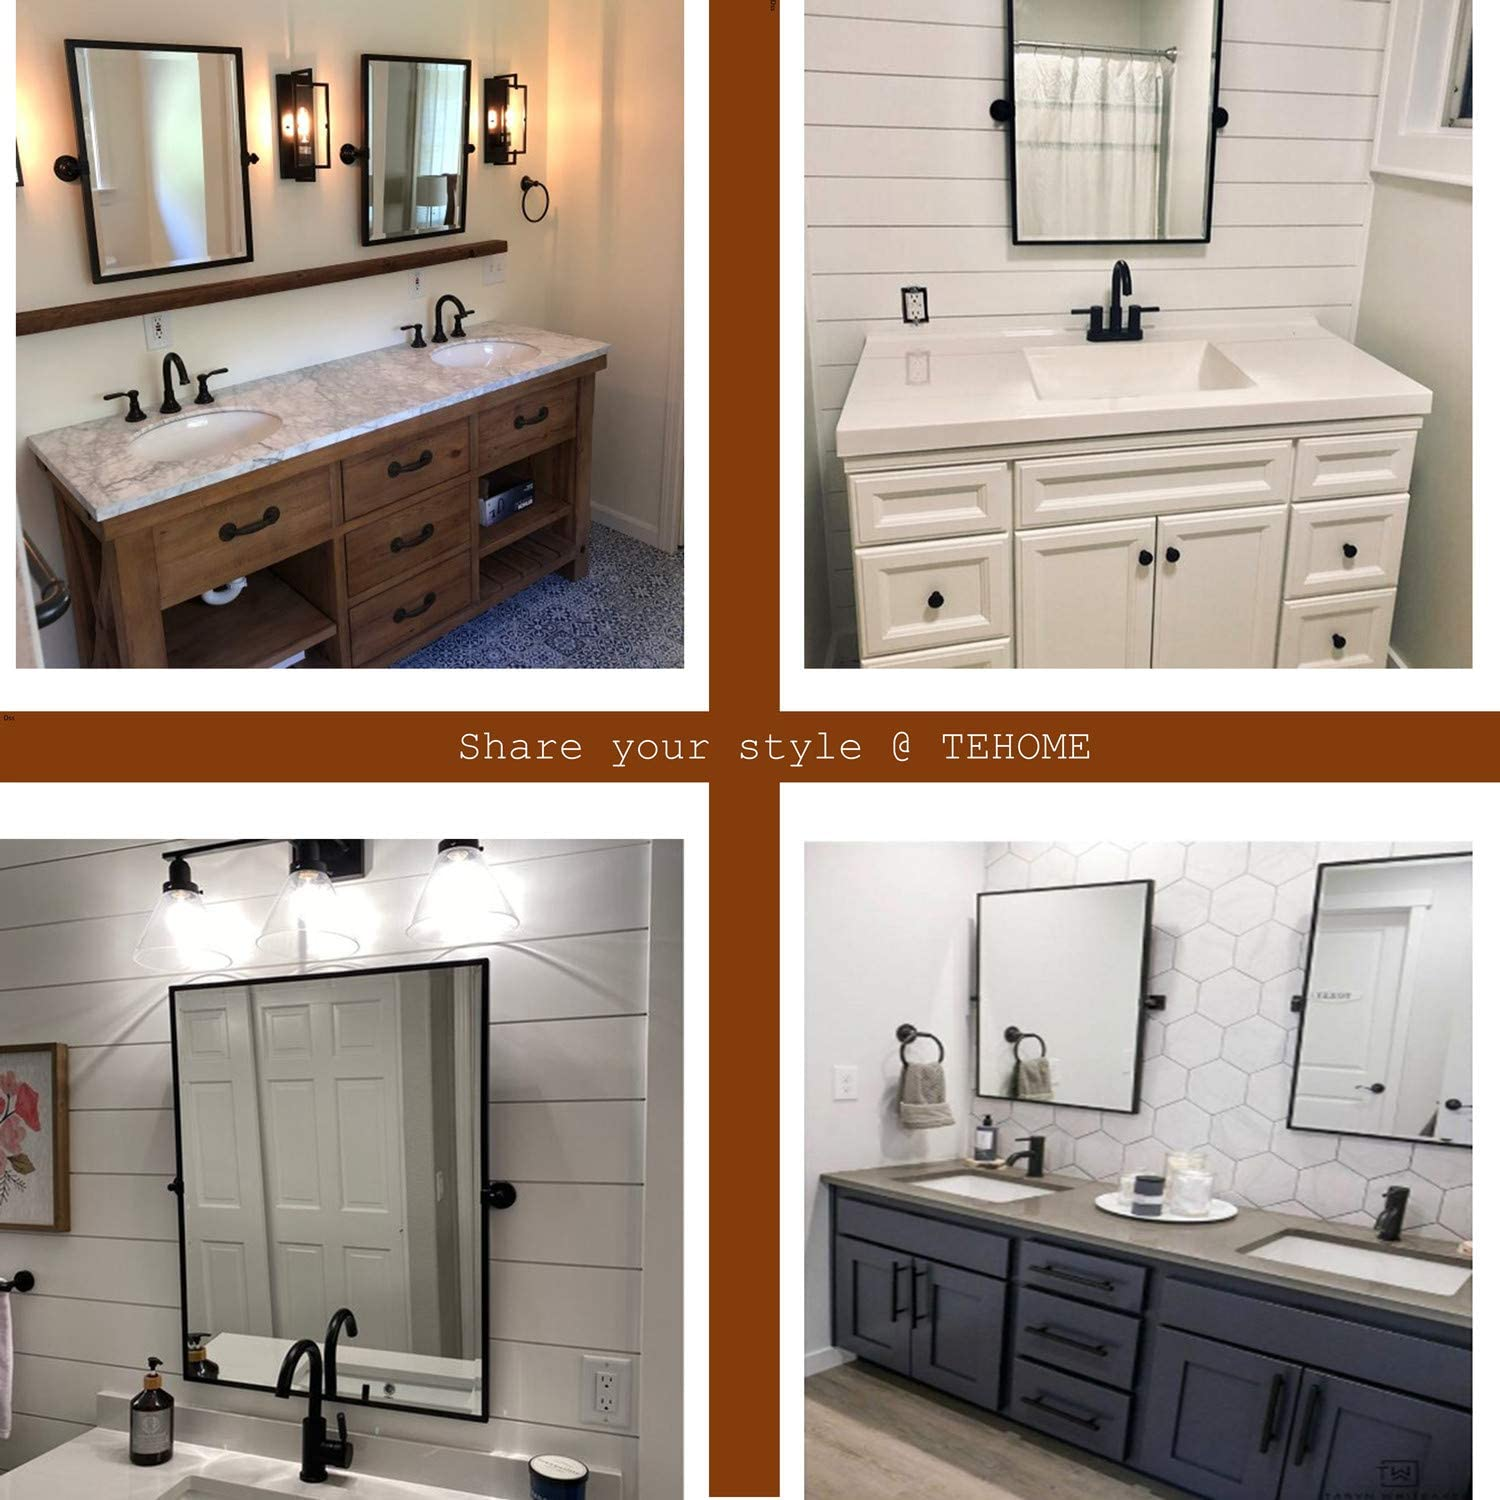 Buy Black Metal Framed Pivot Rectangle Bathroom Mirror Tilting Beveled Vanity Mirrors For Wall 23 X 24 Inches Online In Italy B082ywh9xs